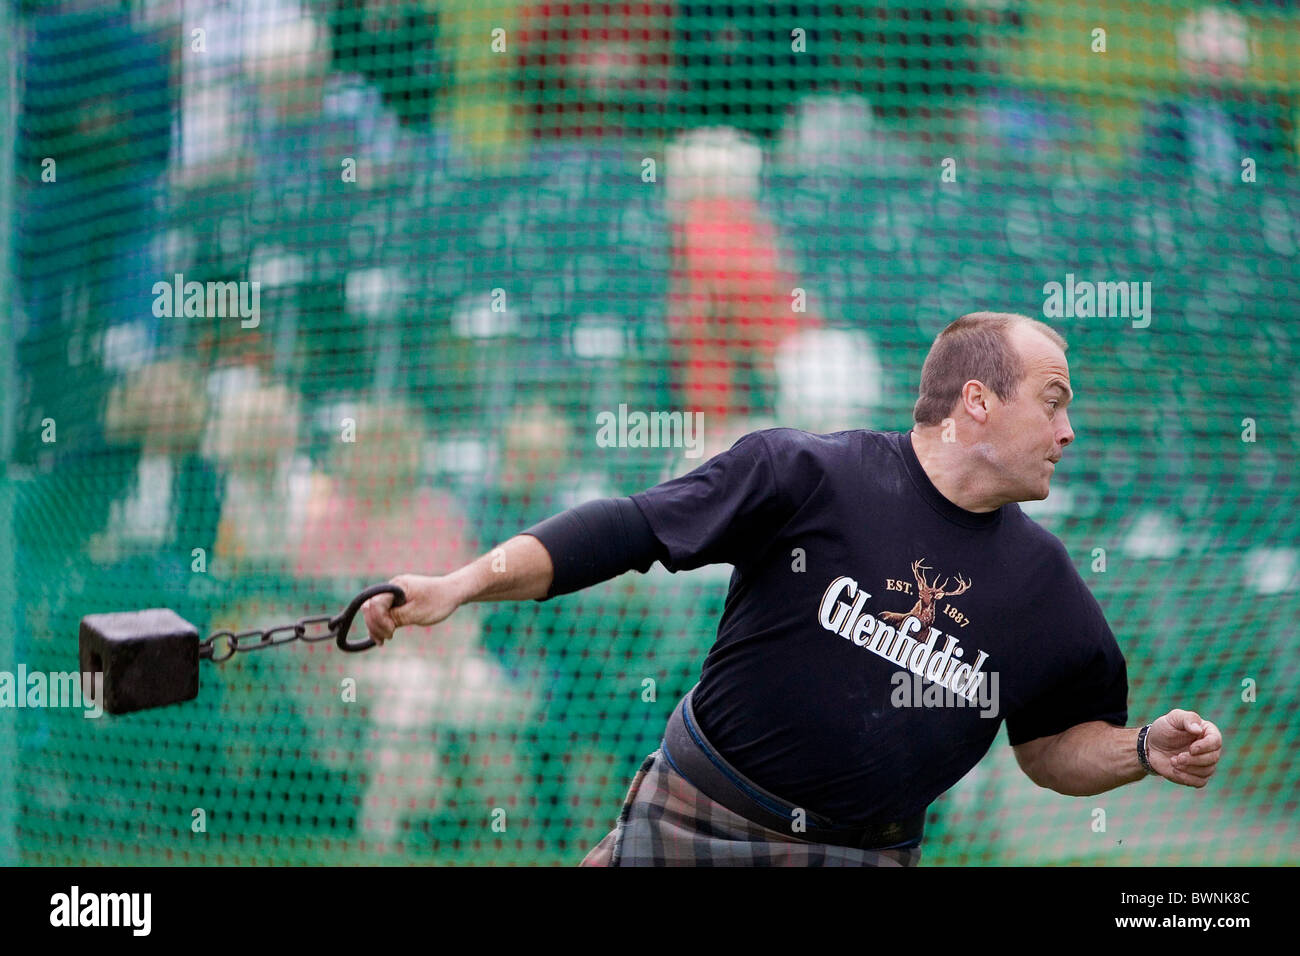 Test of strength Throwing the Hammer at the Braemar Games Highland gathering, SCOTLAND - Stock Image